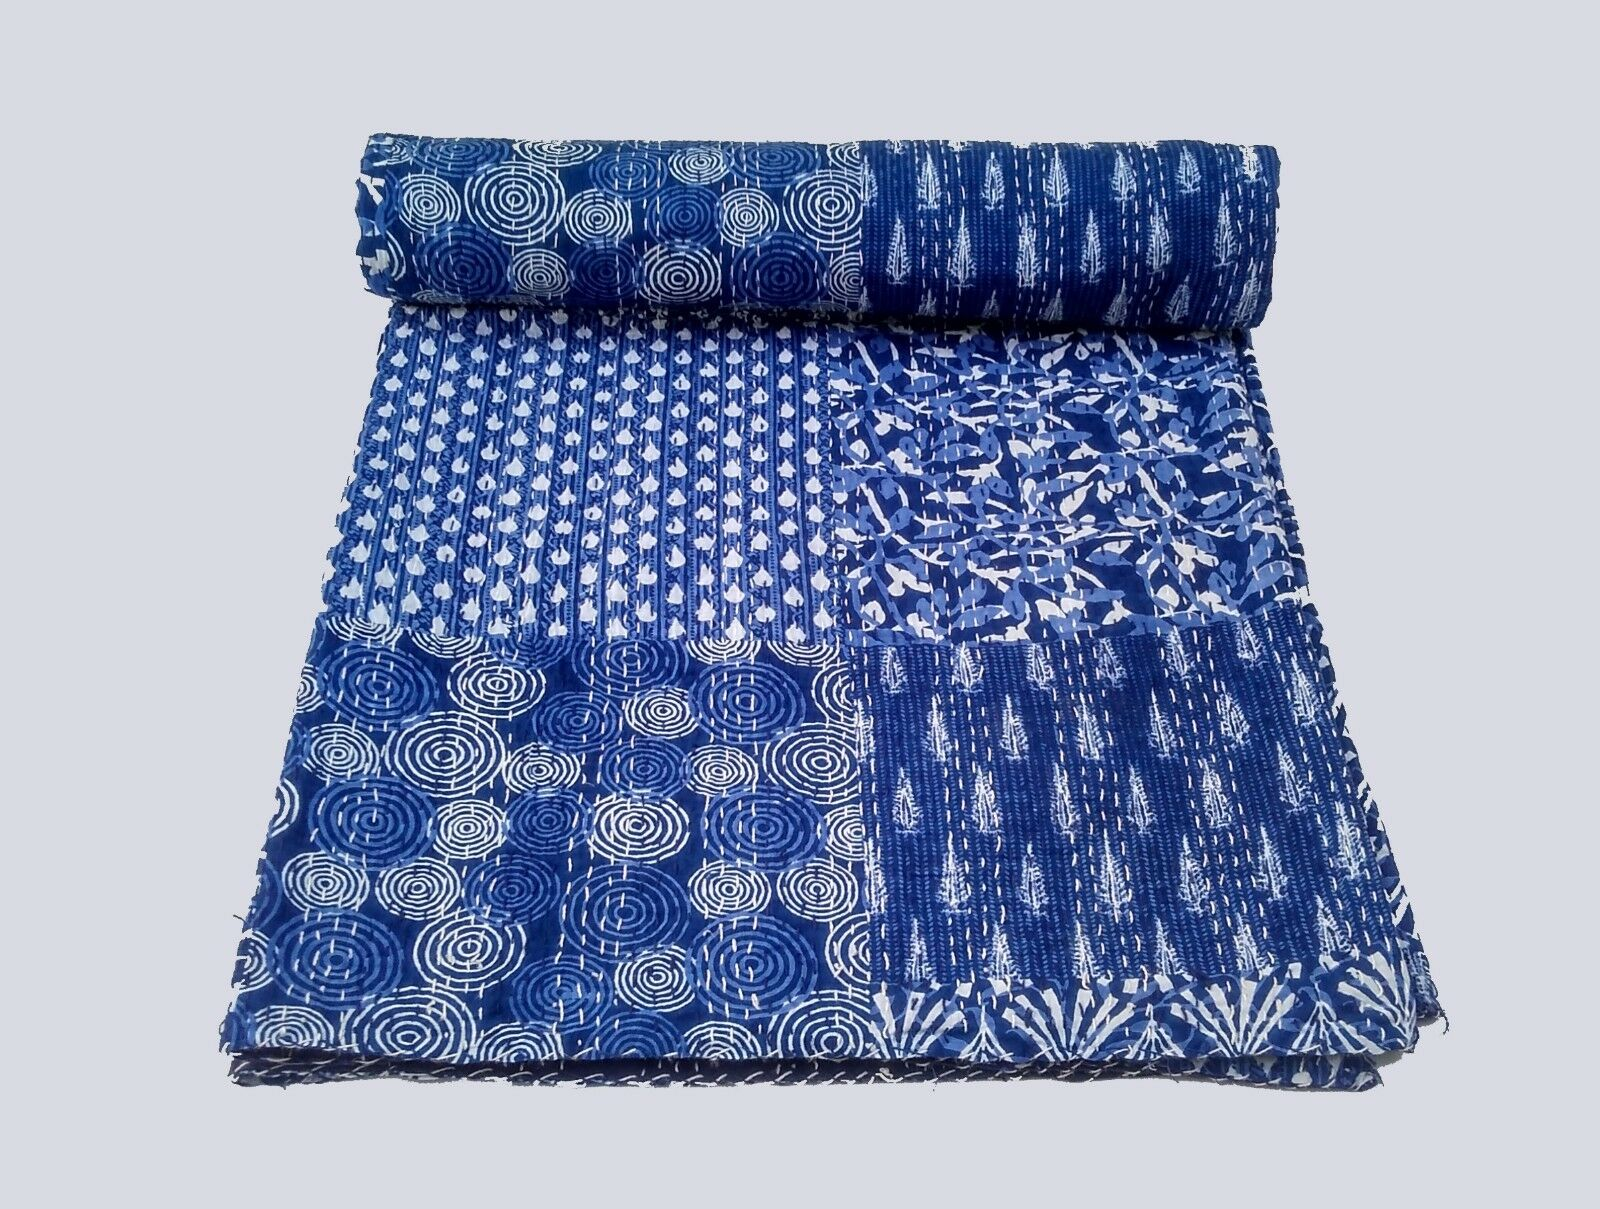 Handmade Indian Kantha Quilt Indigo blueeee Blanket Gudari Quilt Kantha Throw Queen